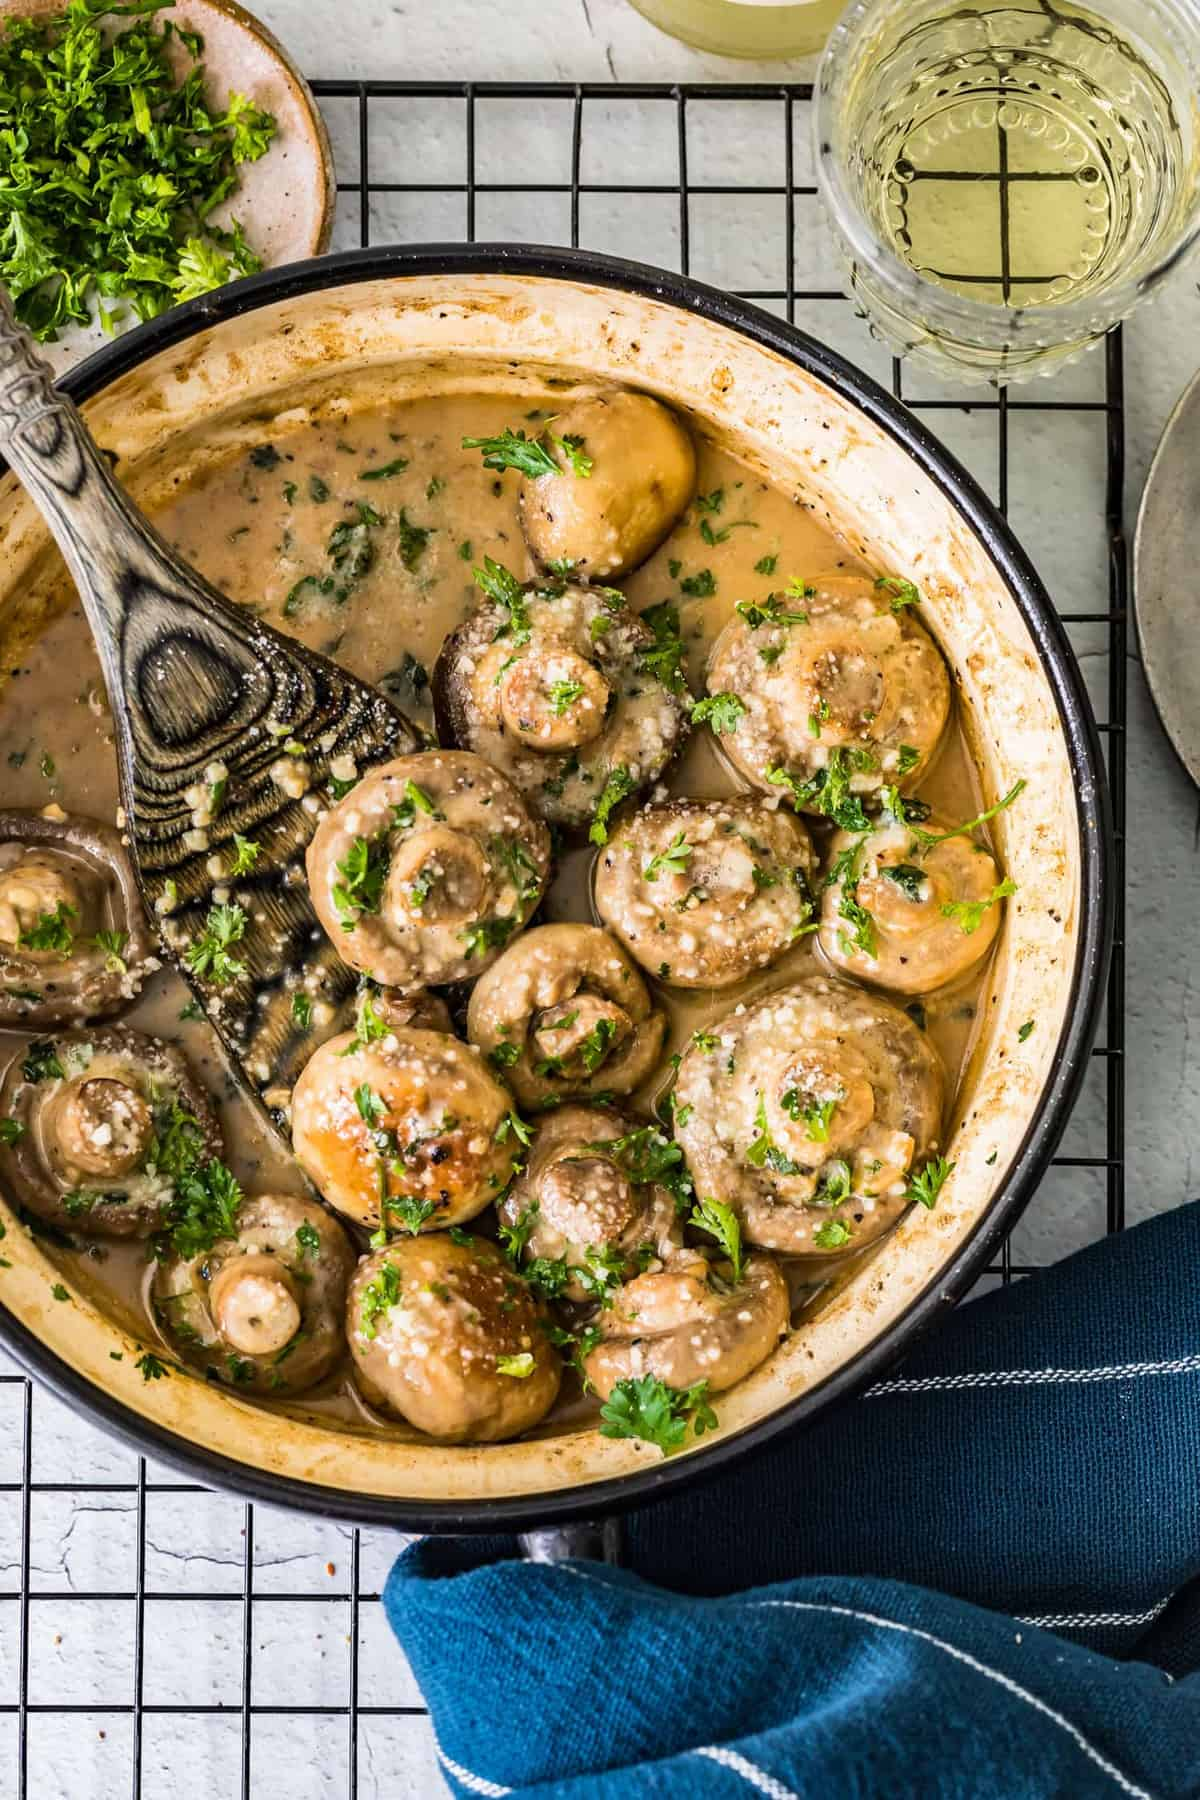 Top shot of creamy garlic mushrooms in a pan with a wooden spoon